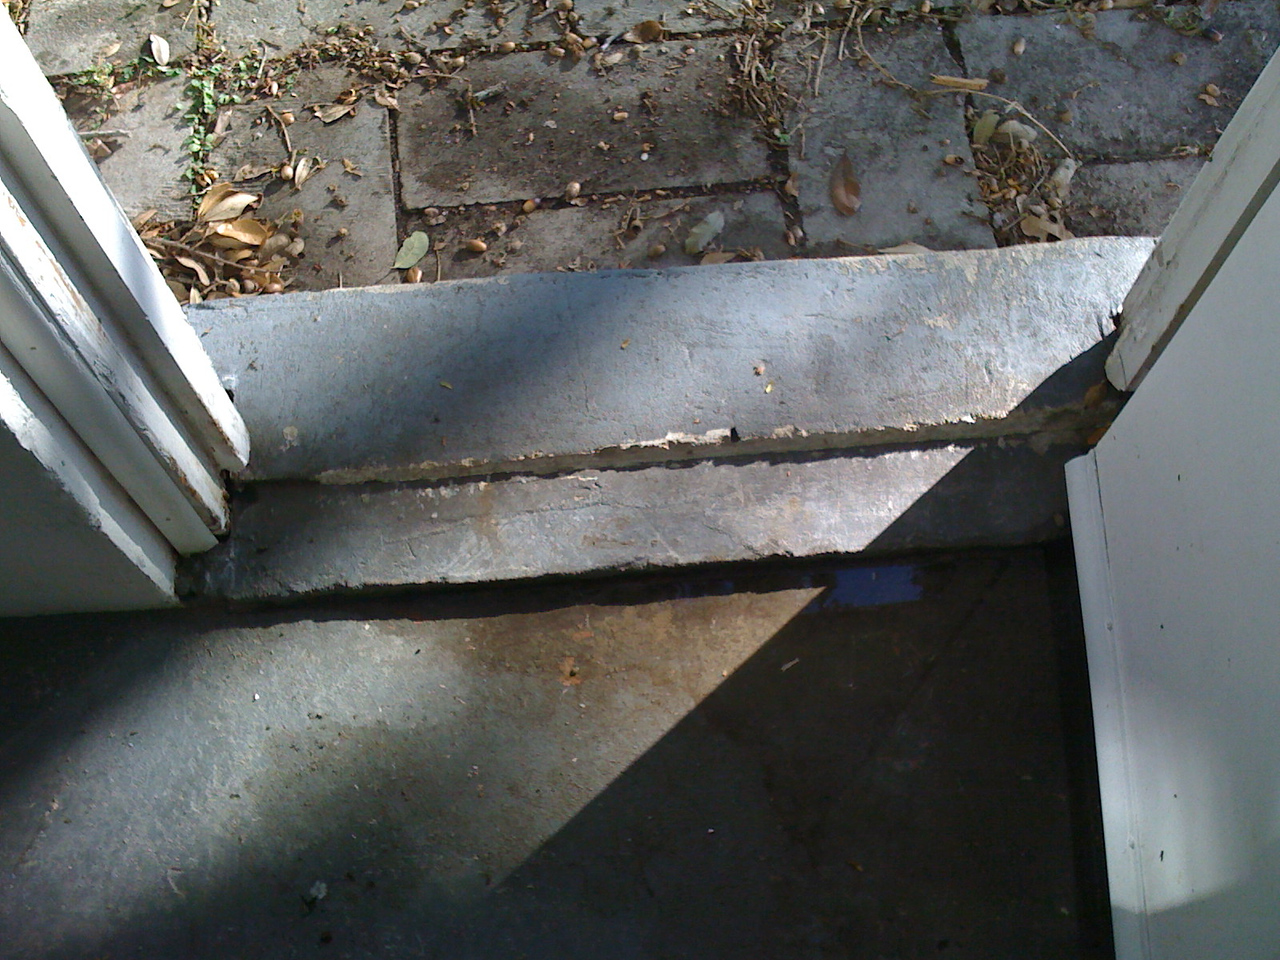 This threshold is letting watter in so we have to figure something out here.  <br /> <br /> Suggestions?